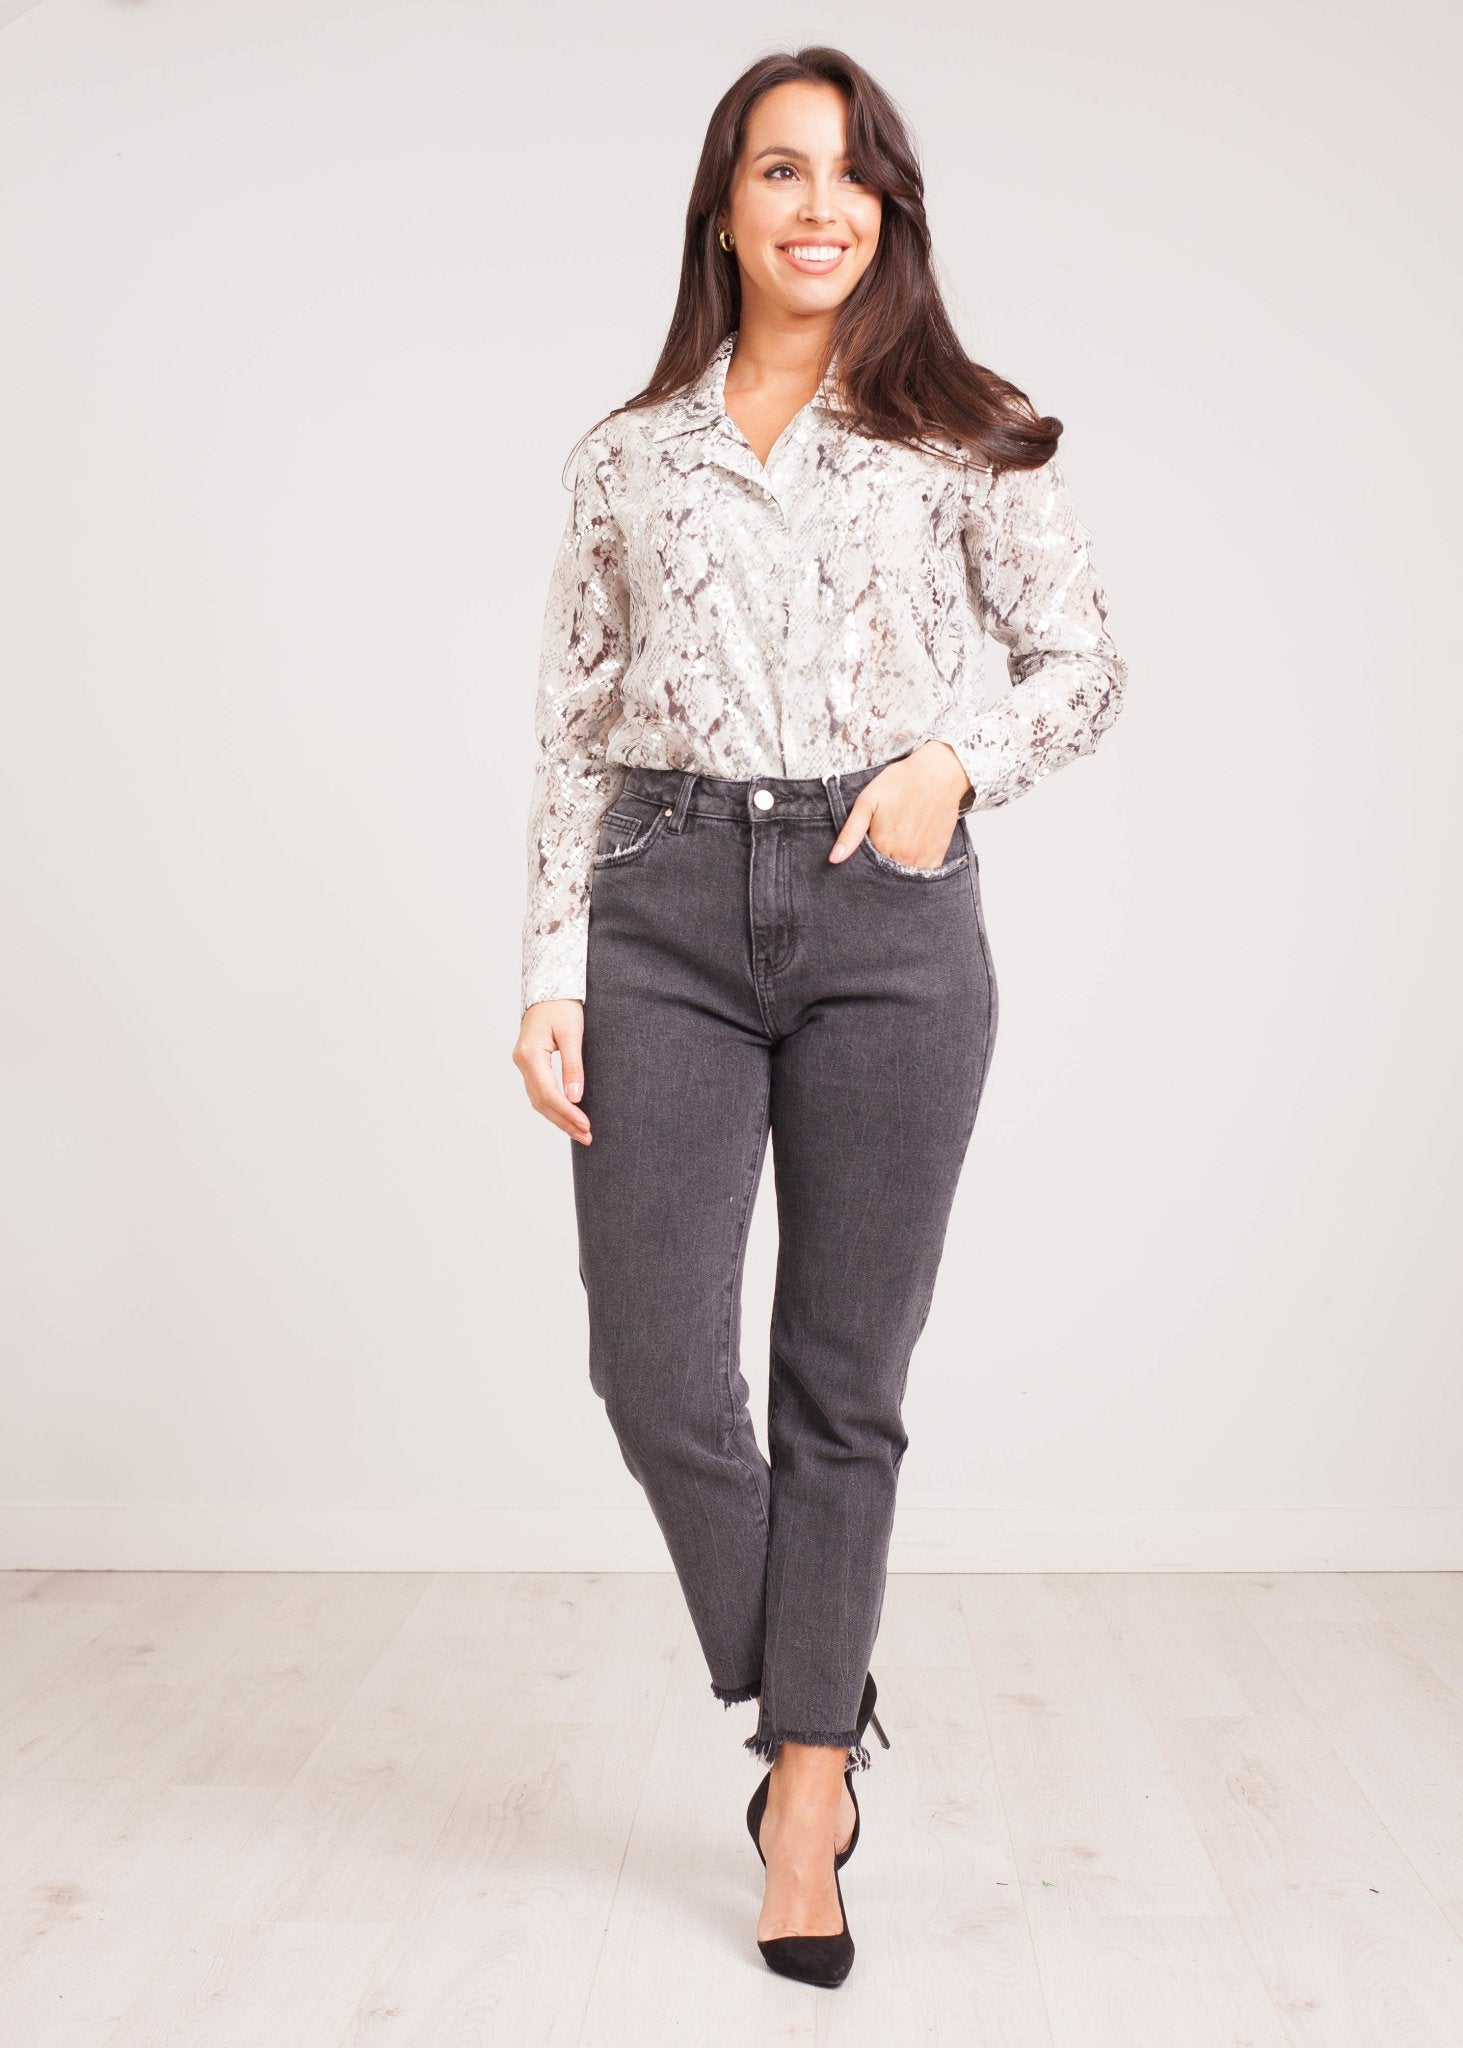 Priya Blouse In Grey Snake Print - The Walk in Wardrobe